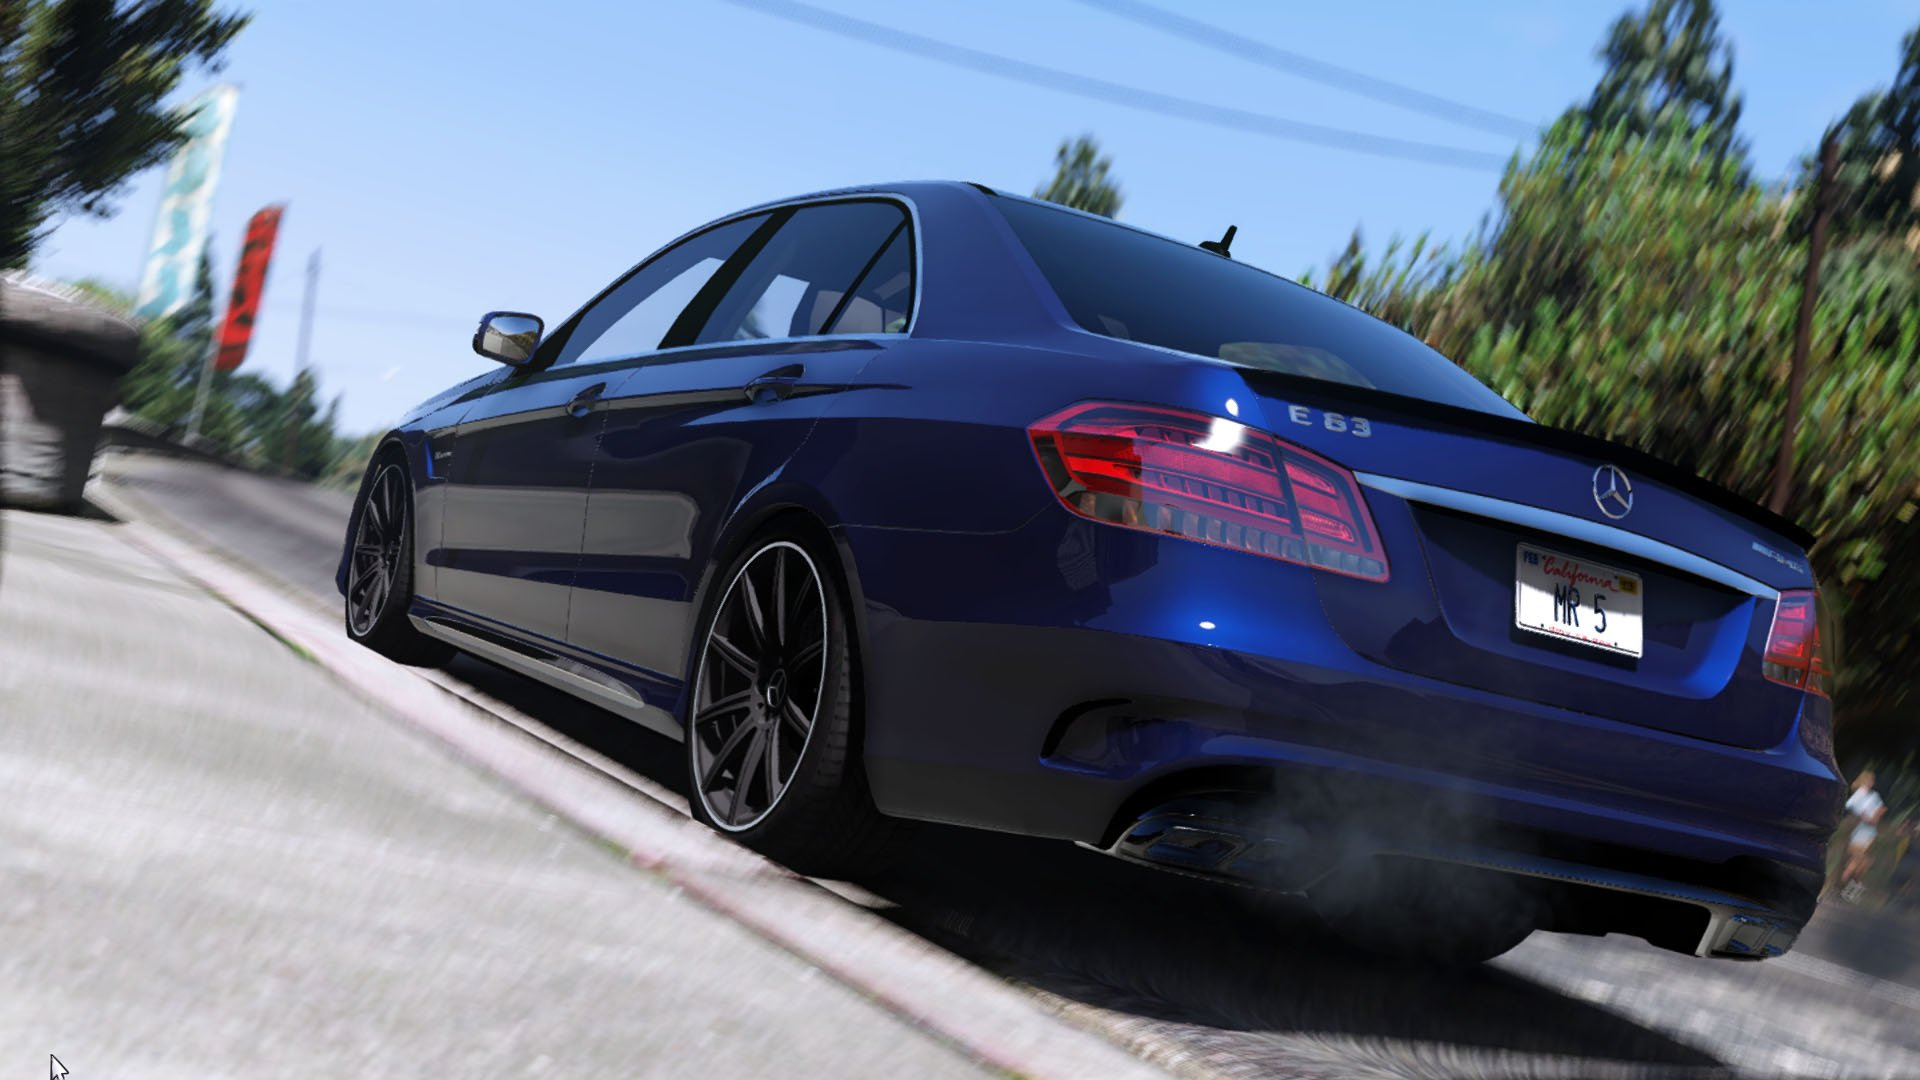 Mercedes benz e63 amg add on replace gta5 for Mercedes benz e 63 amg